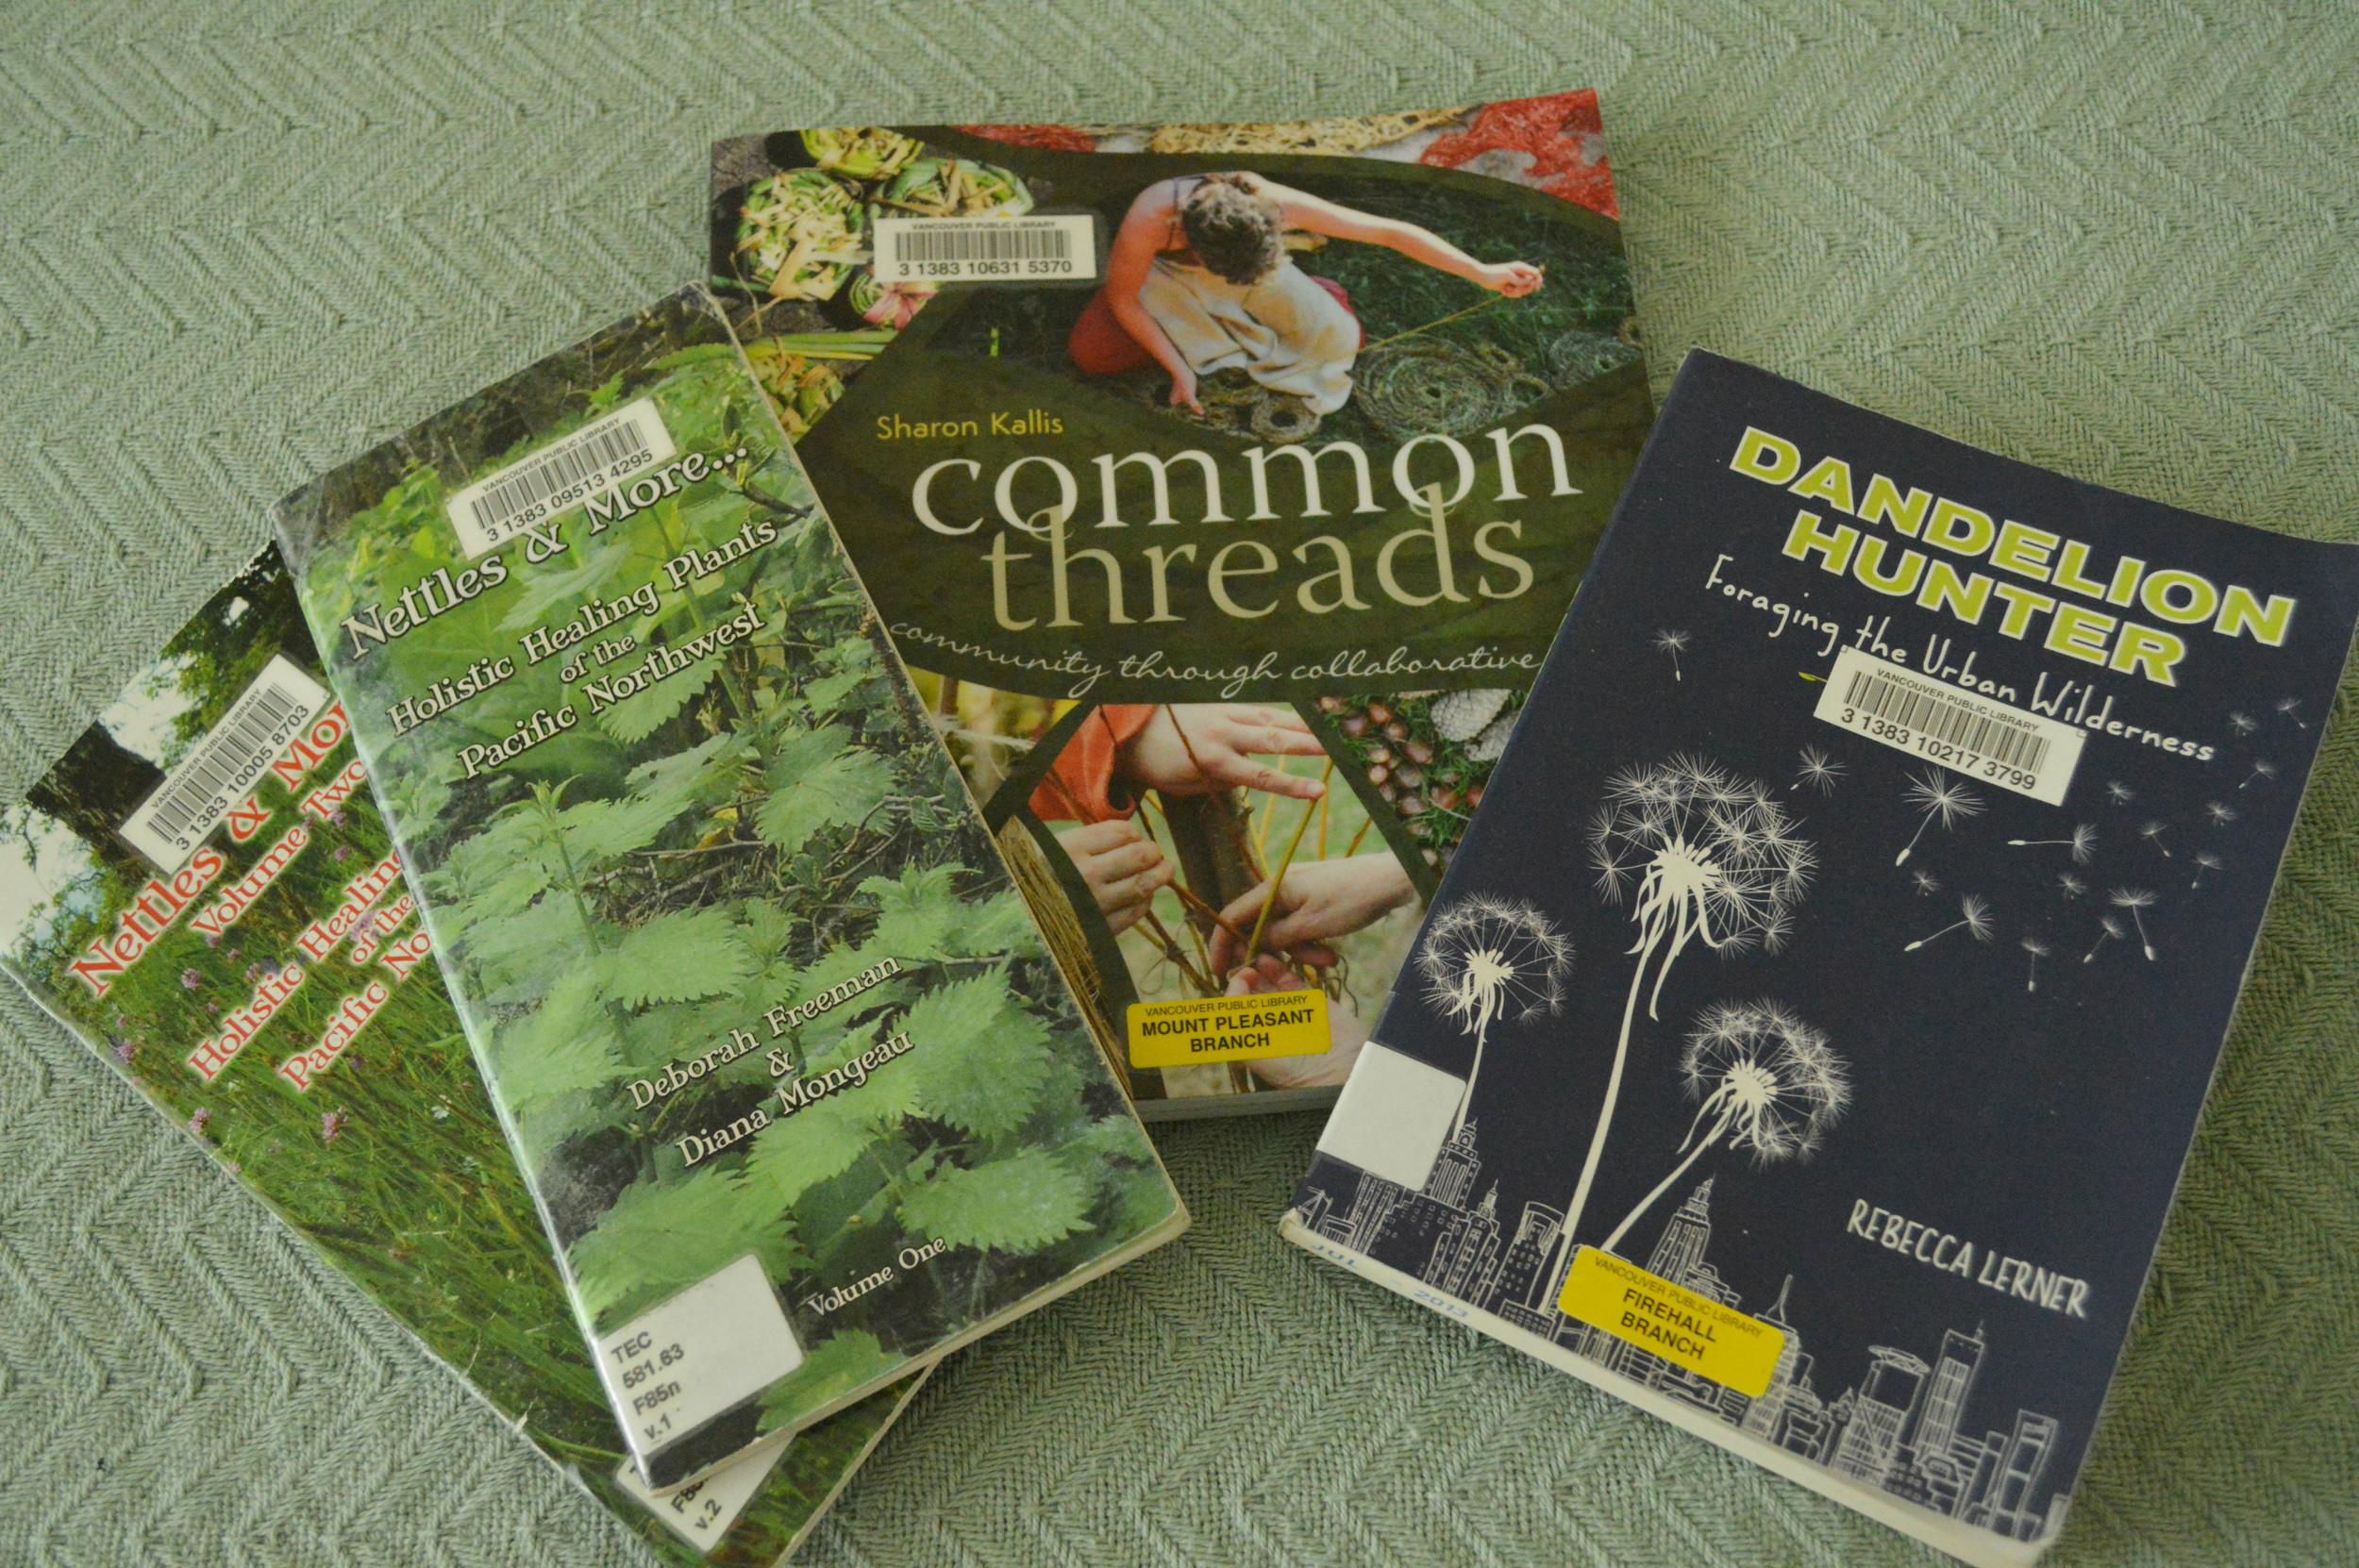 The Nettles & More...  series from Deborah Freeman and Diana Mongeau,  Common Threads  by Sharon Kallis, and  Dandelion Hunter  by Rebecca Lerner.